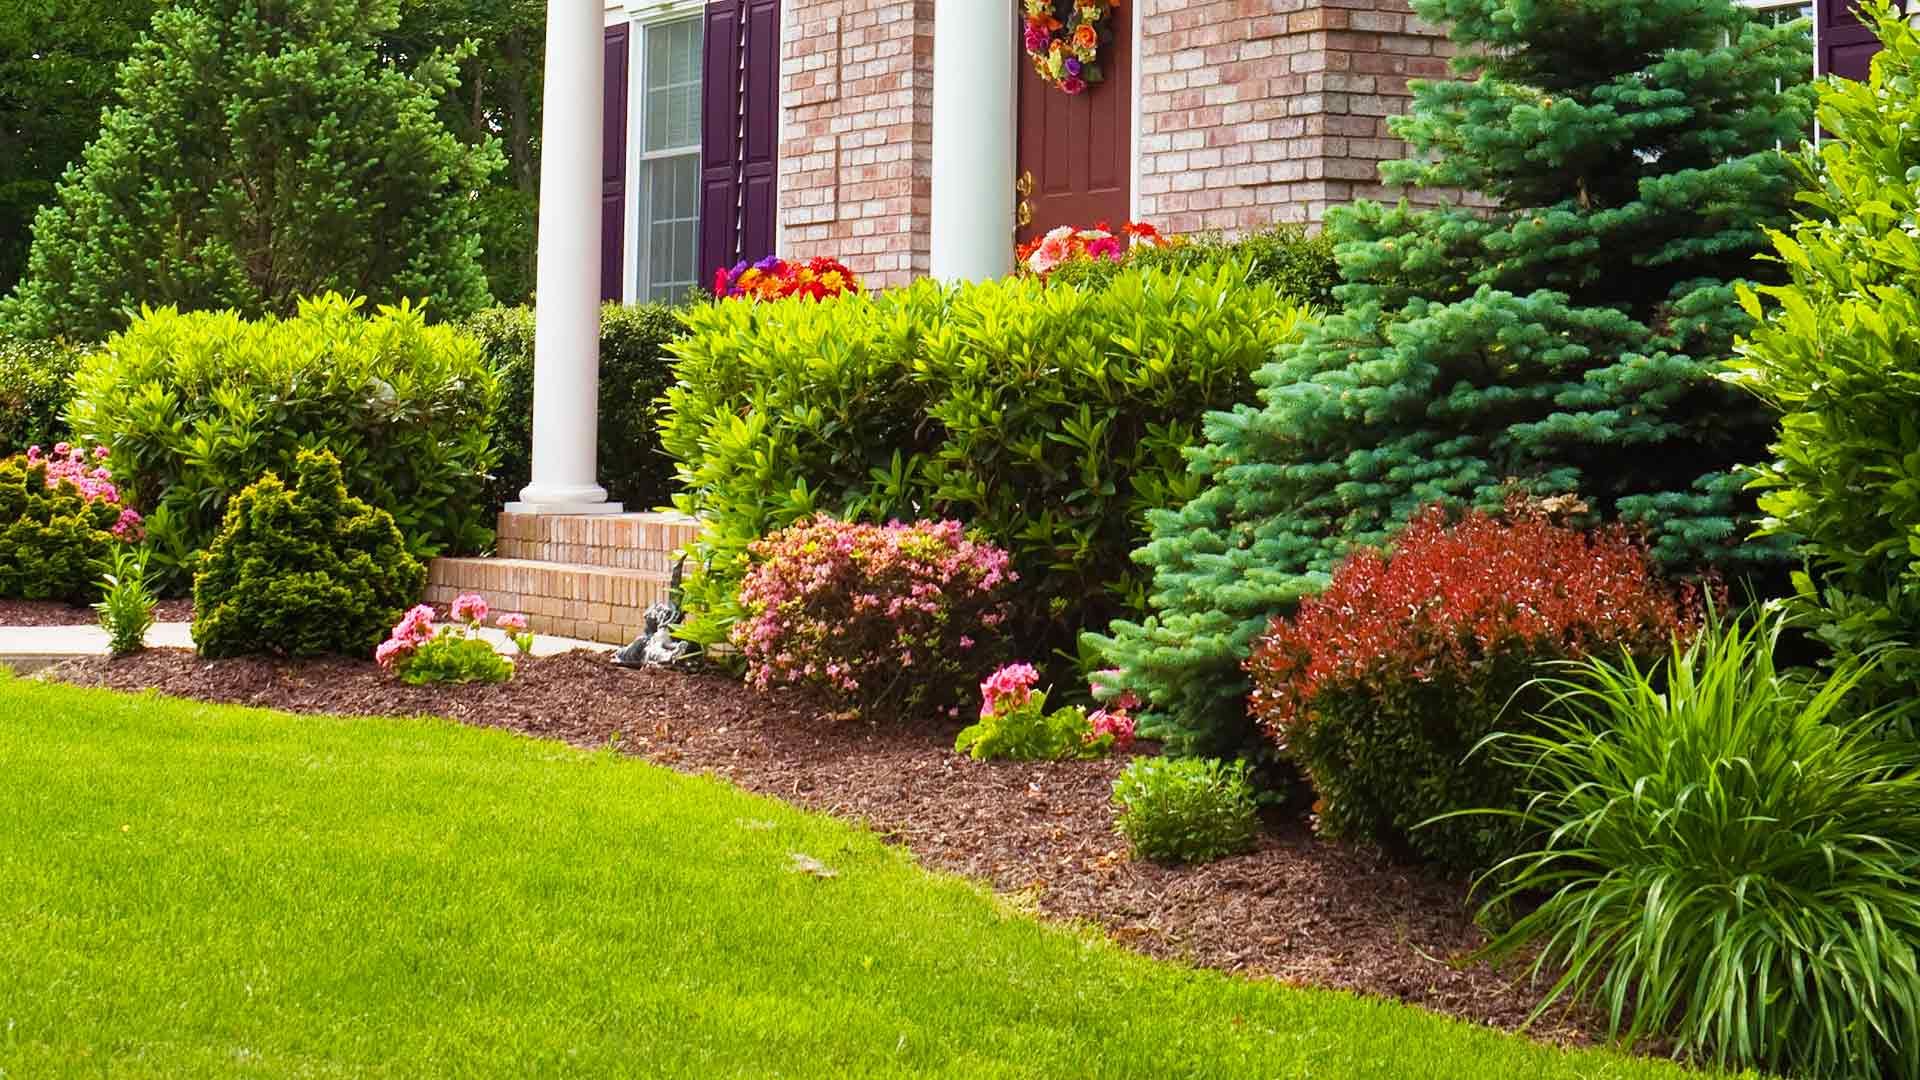 Front yard that is receiving scheduled, full-service lawn and landscape maintenance.